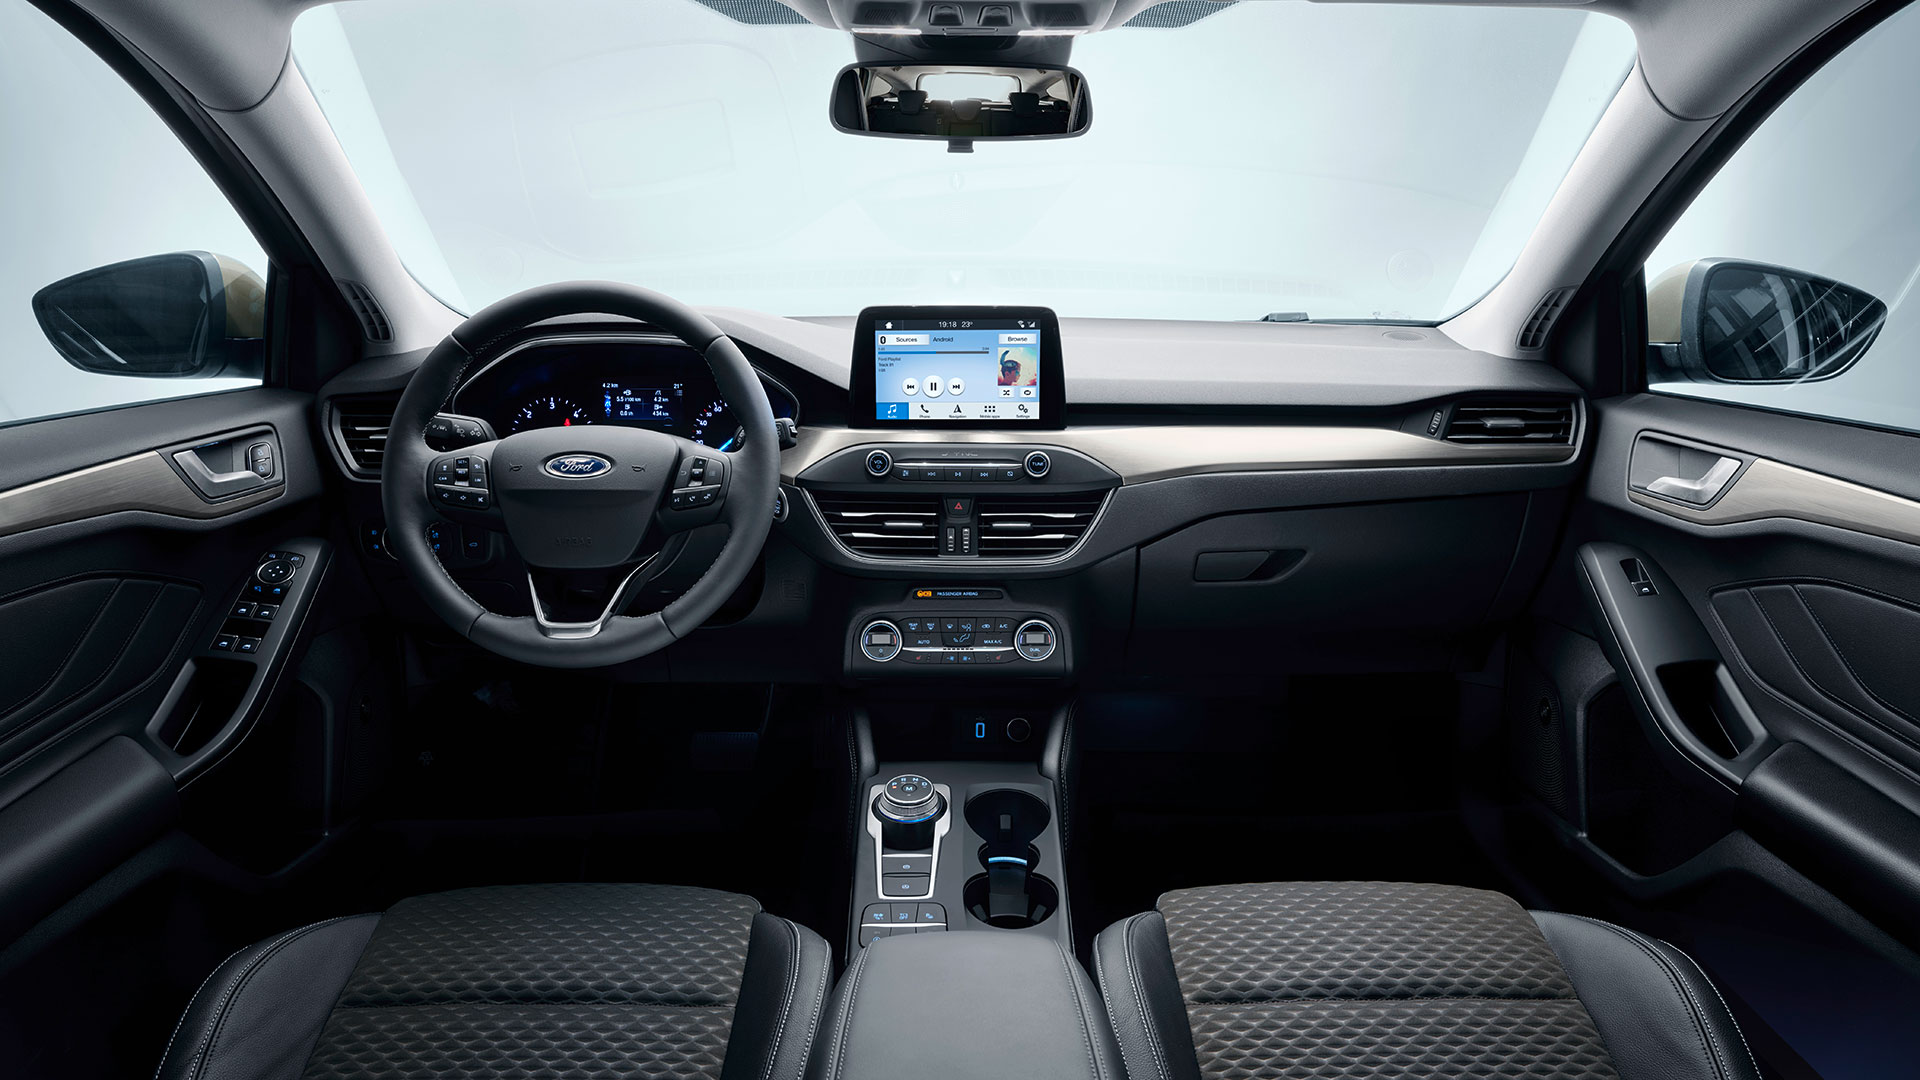 Slimmer Outside, Roomier Inside — Ford Focus